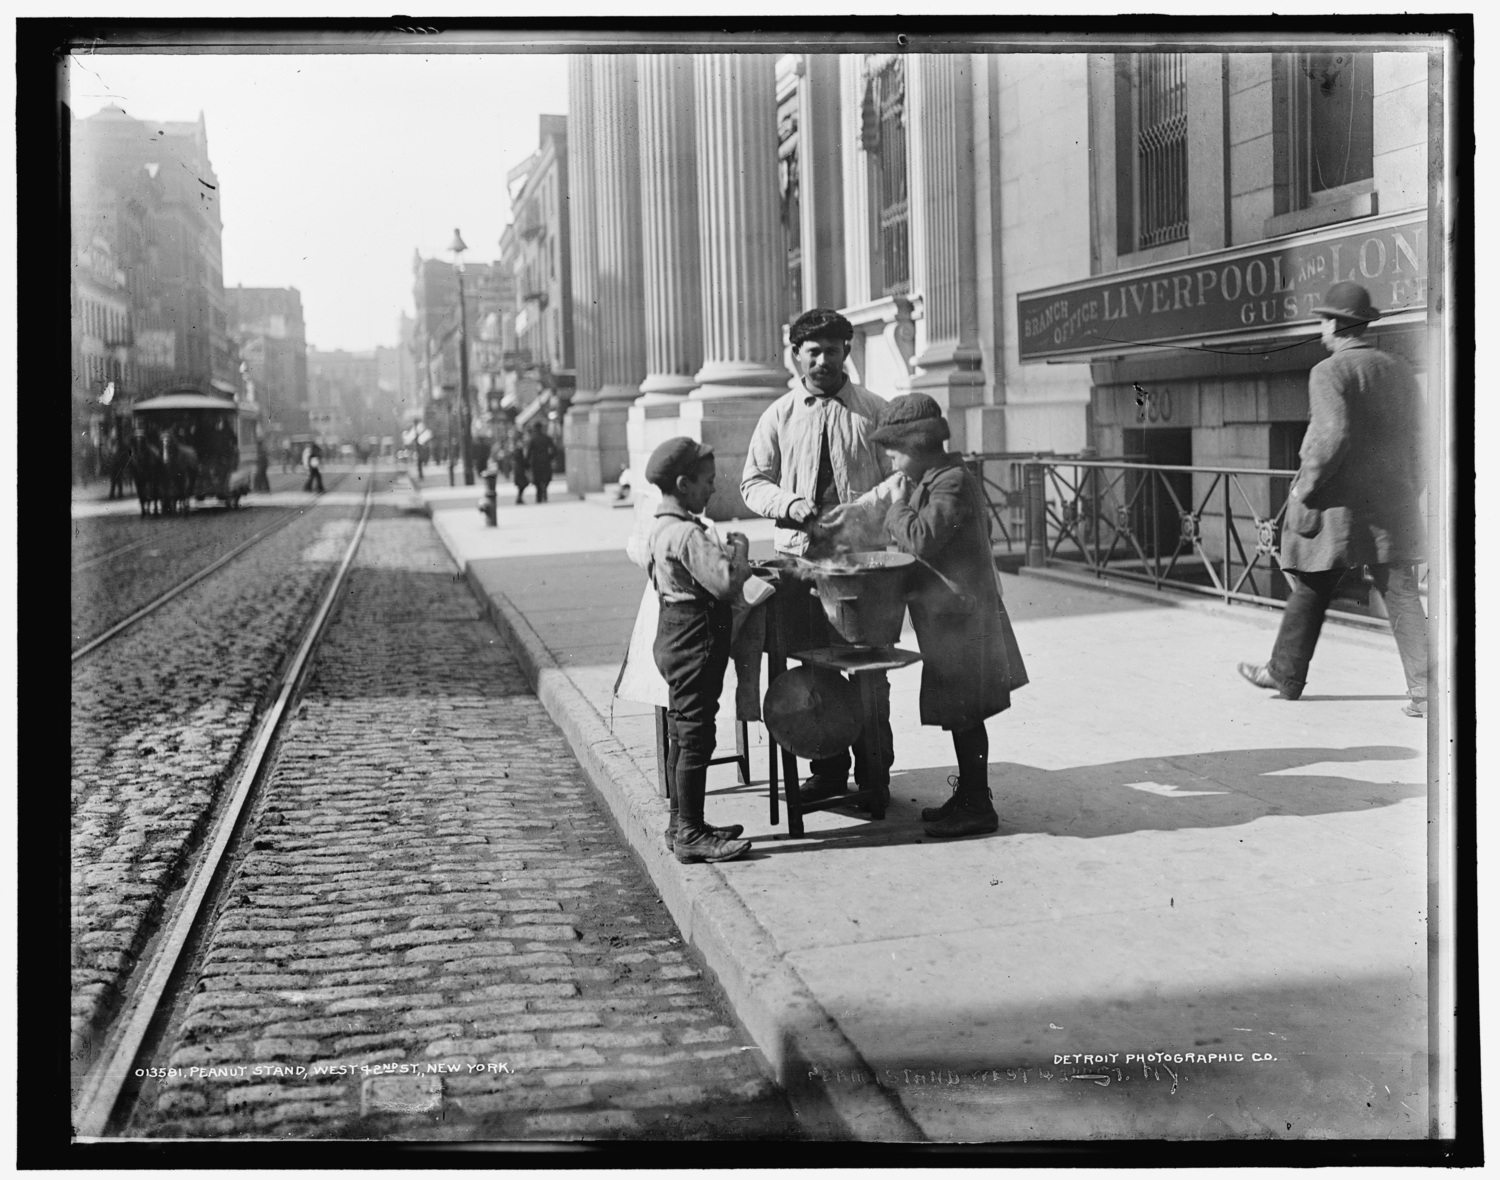 Peanut stand, West 42nd St., New York circa 1900